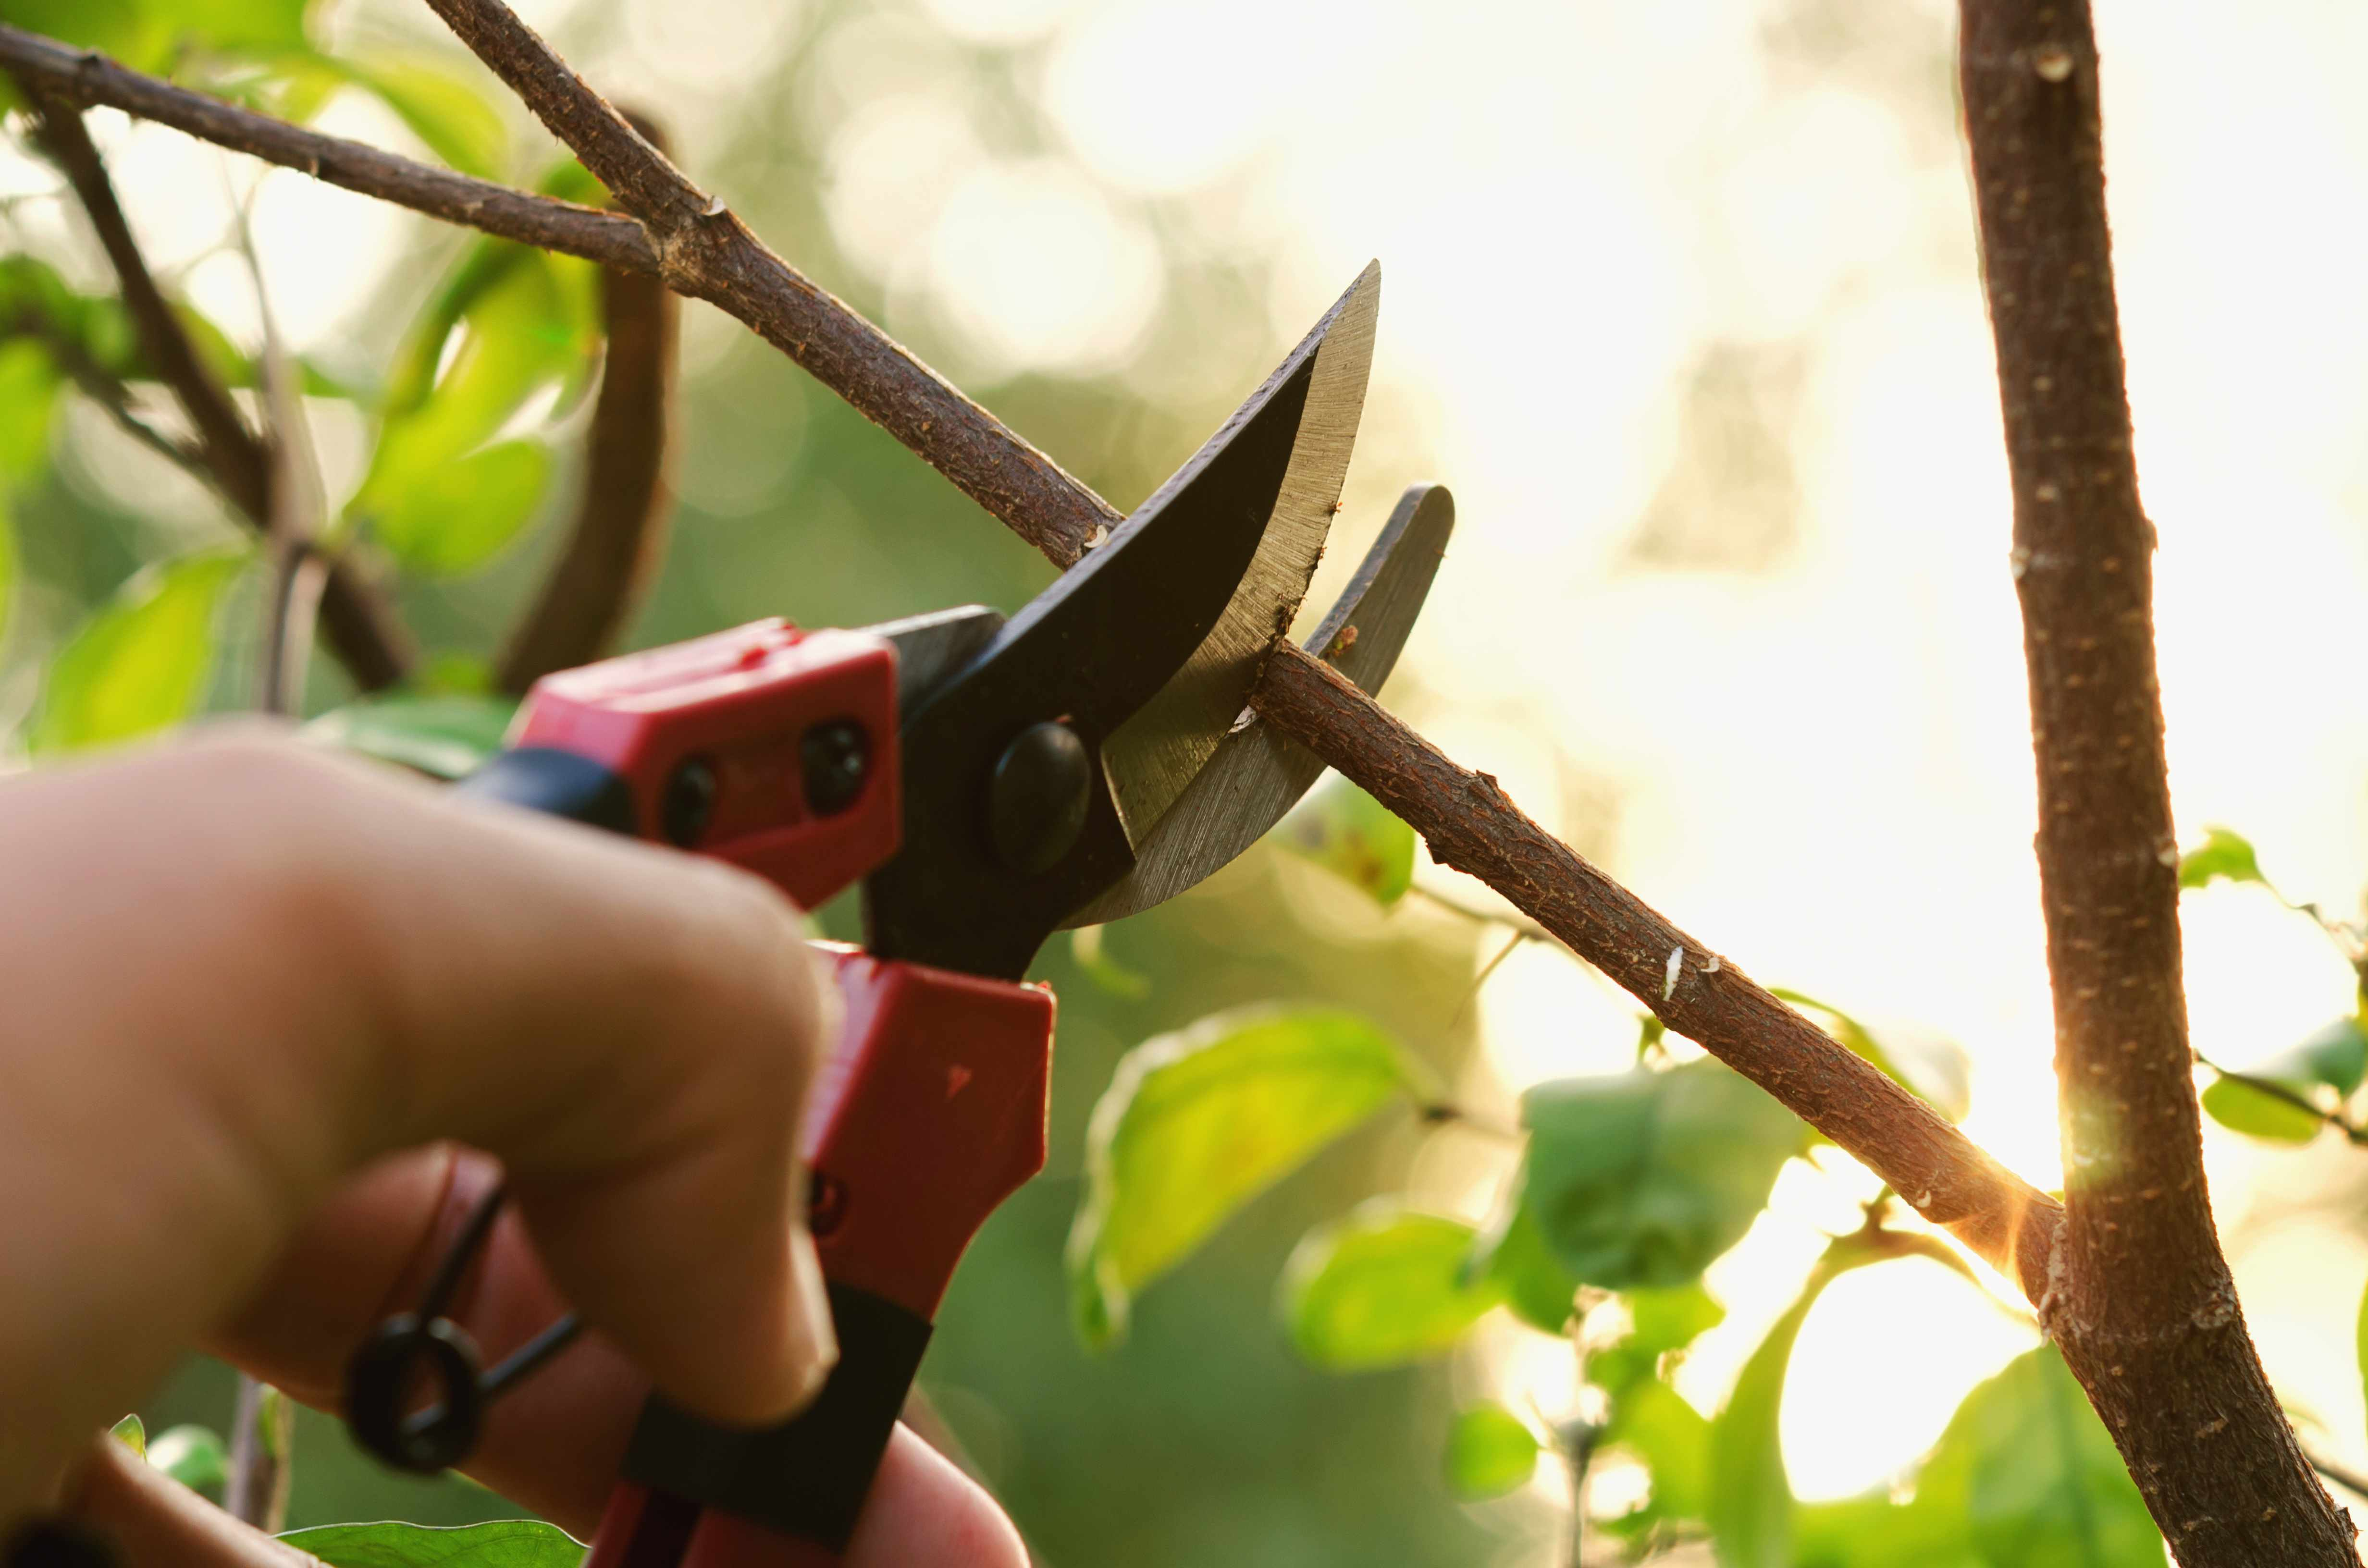 hand pruning tree and pruning shear in garden with sunset background